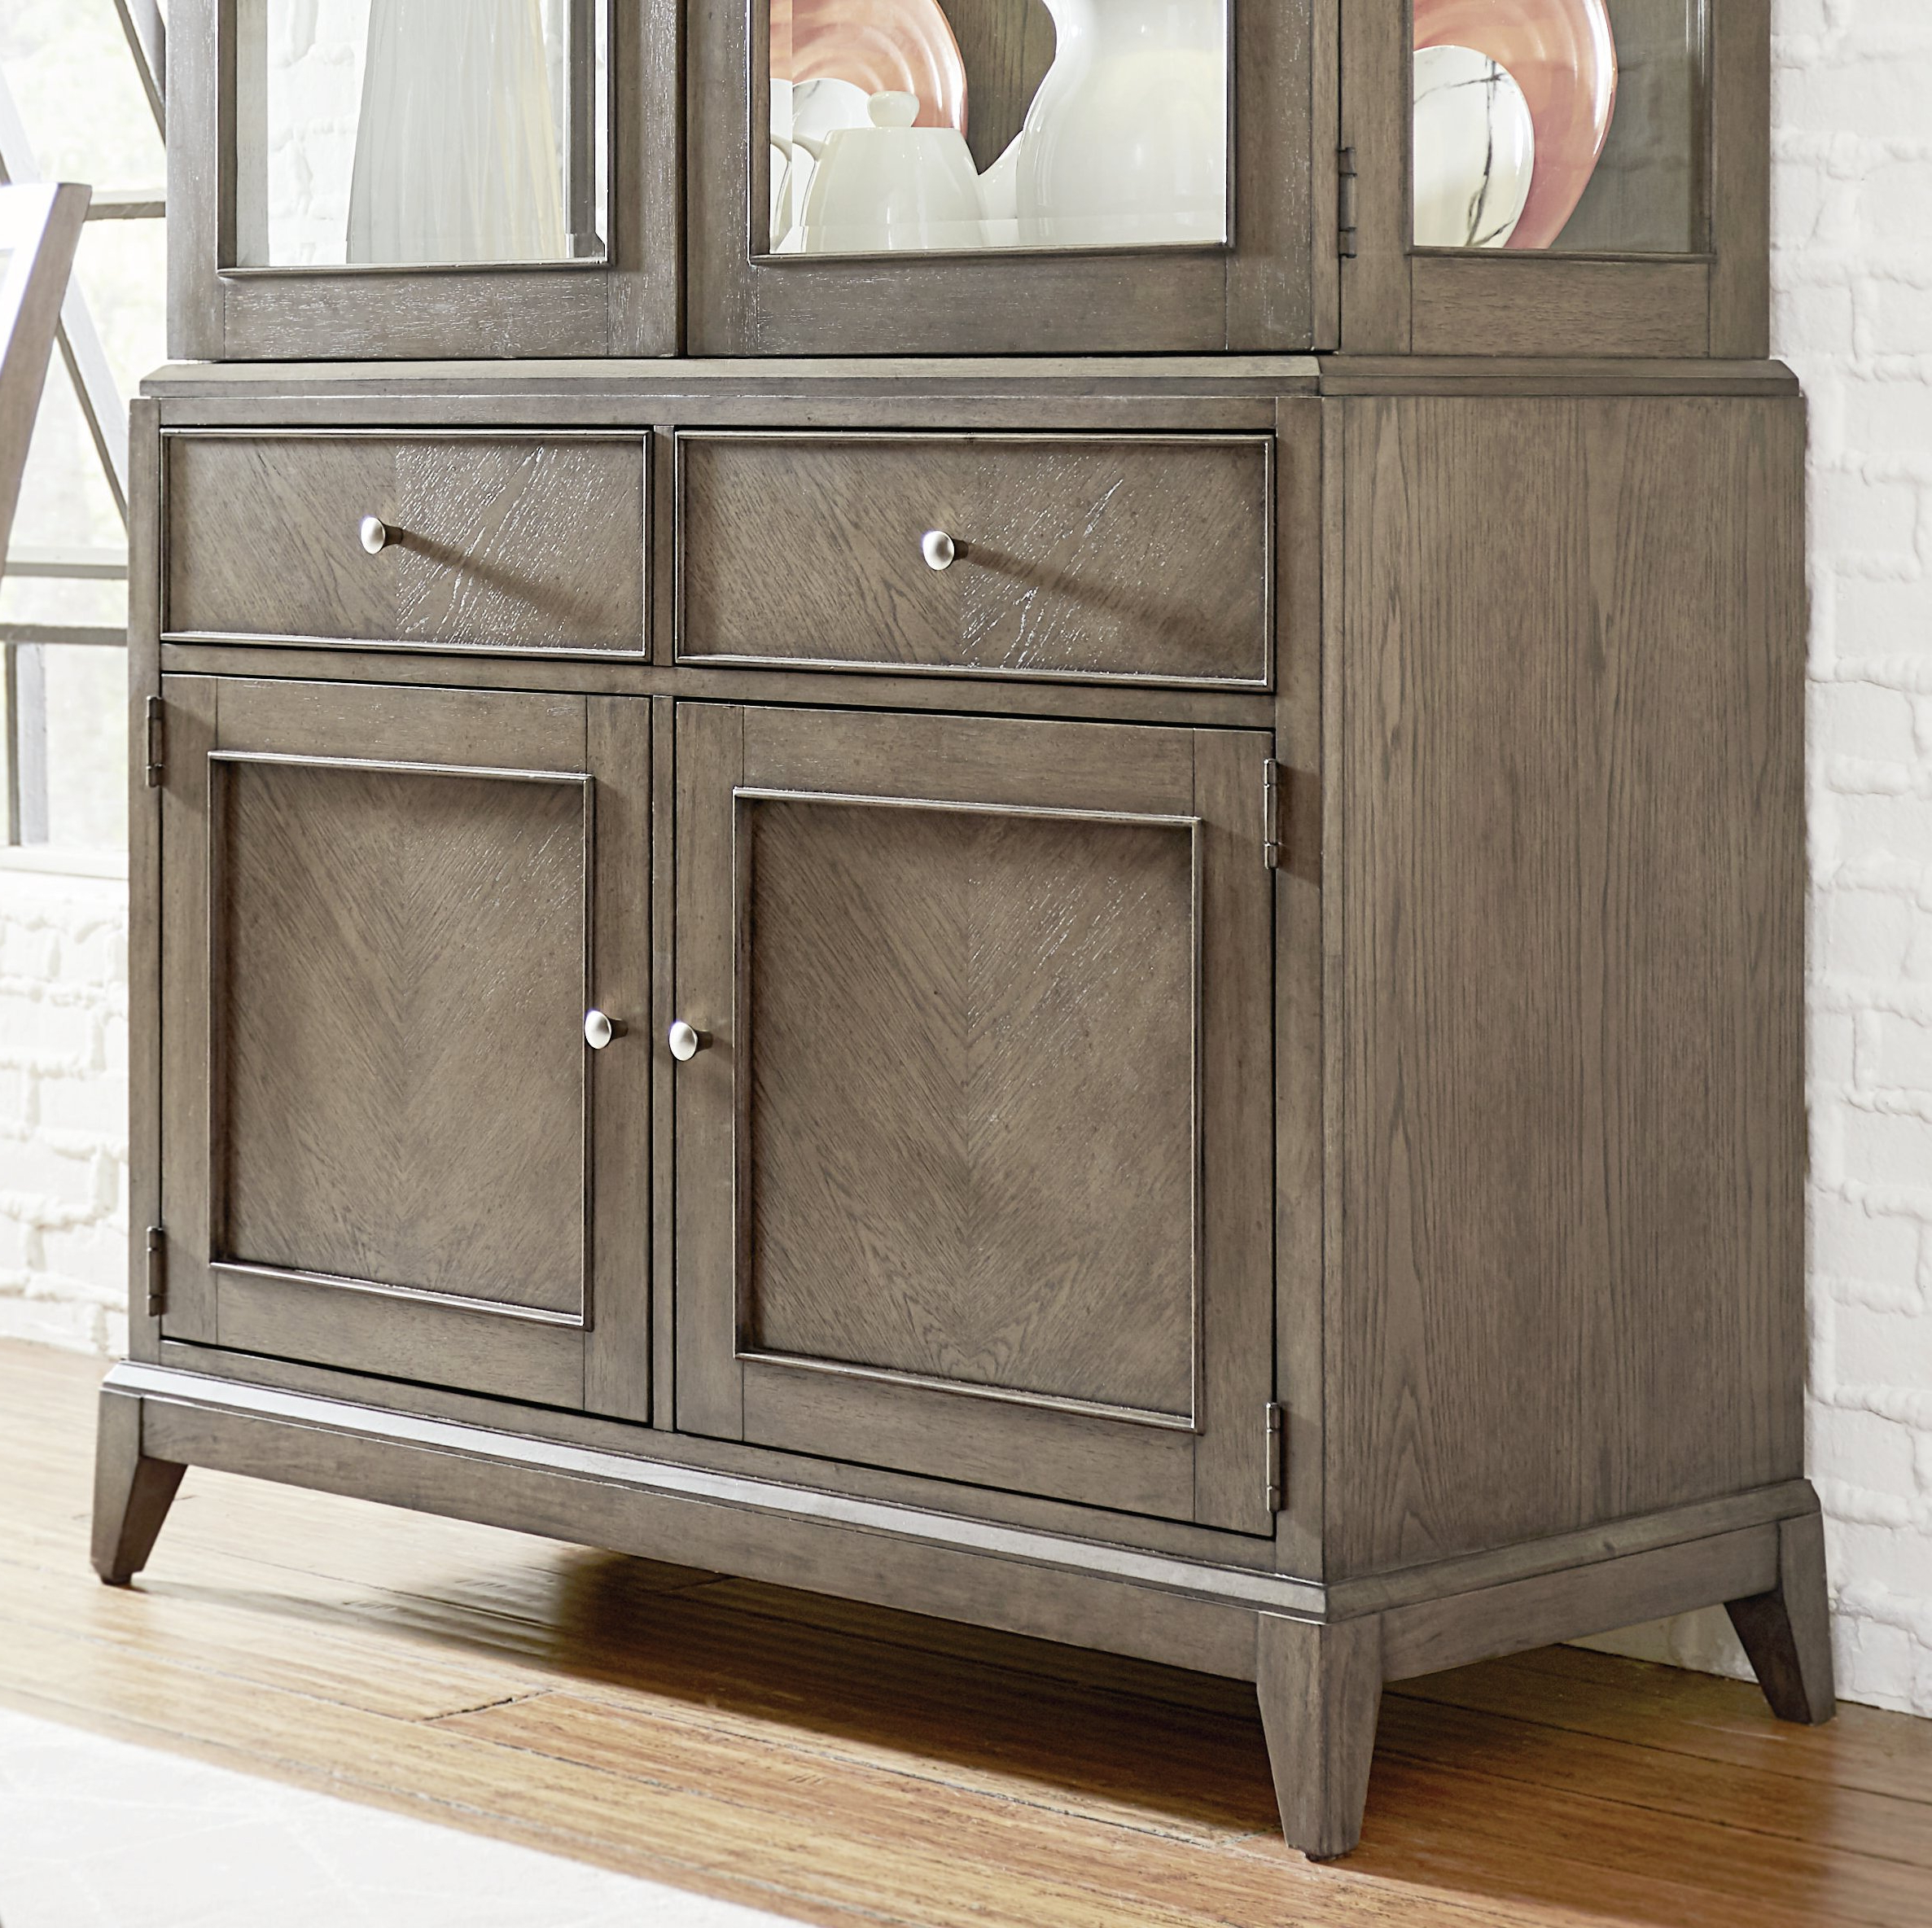 Narrow Dining Room Sideboards | Wayfair In Pineville Dining Sideboards (View 3 of 20)